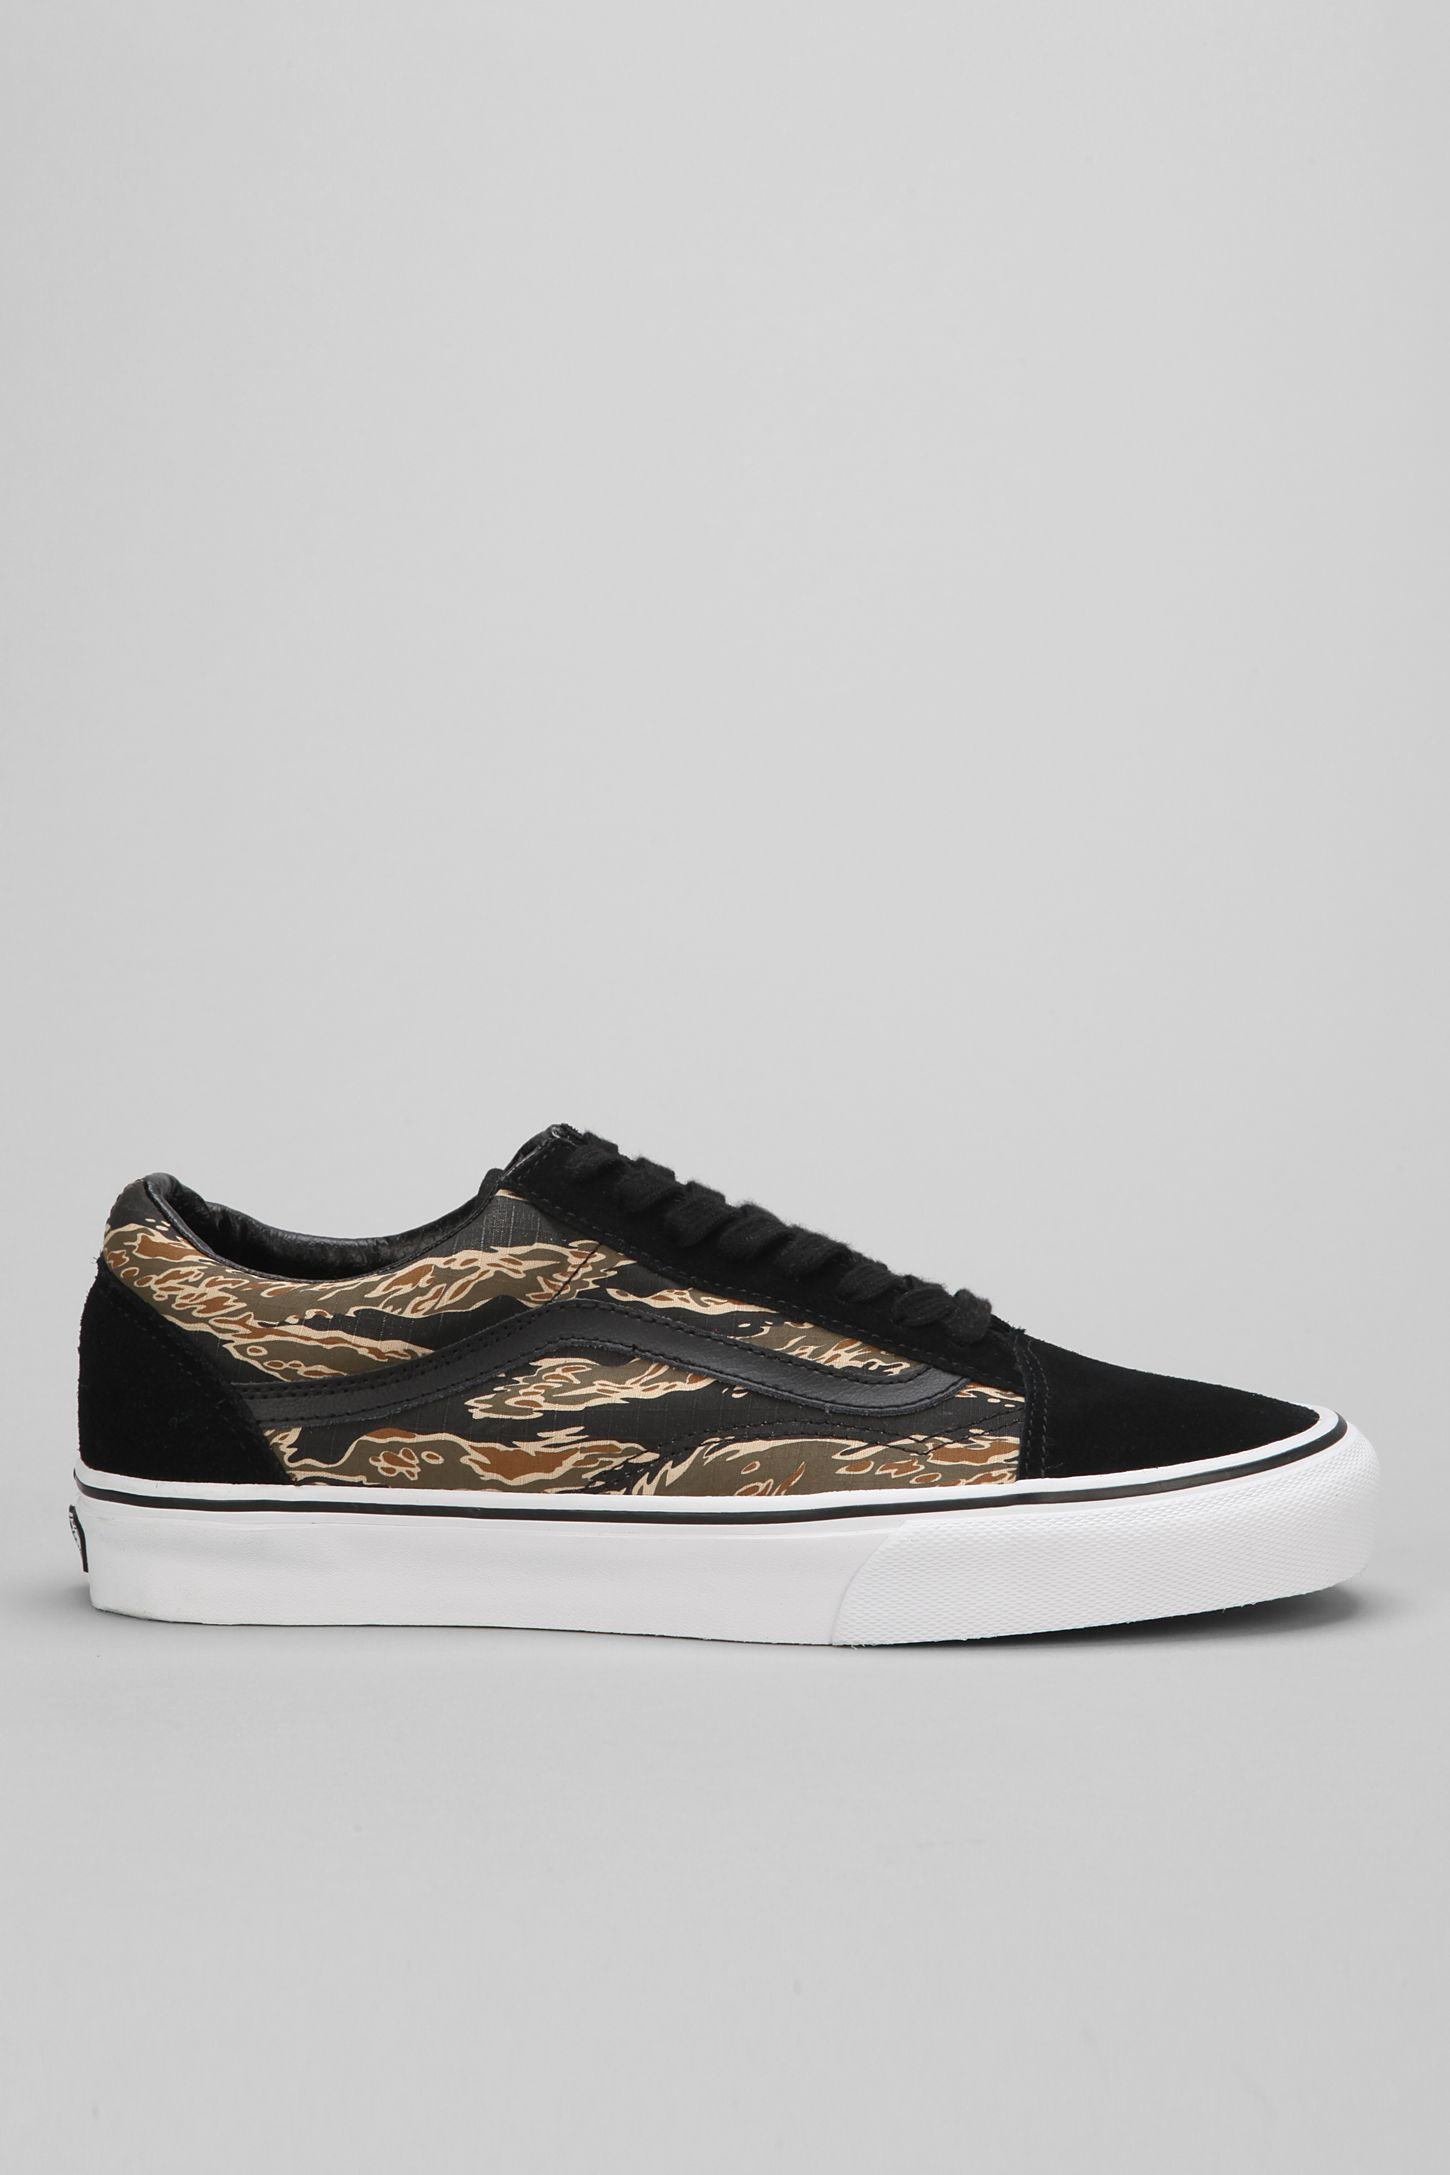 2f65b8980e Vans Old Skool Suede Tiger Camo Men s Sneaker